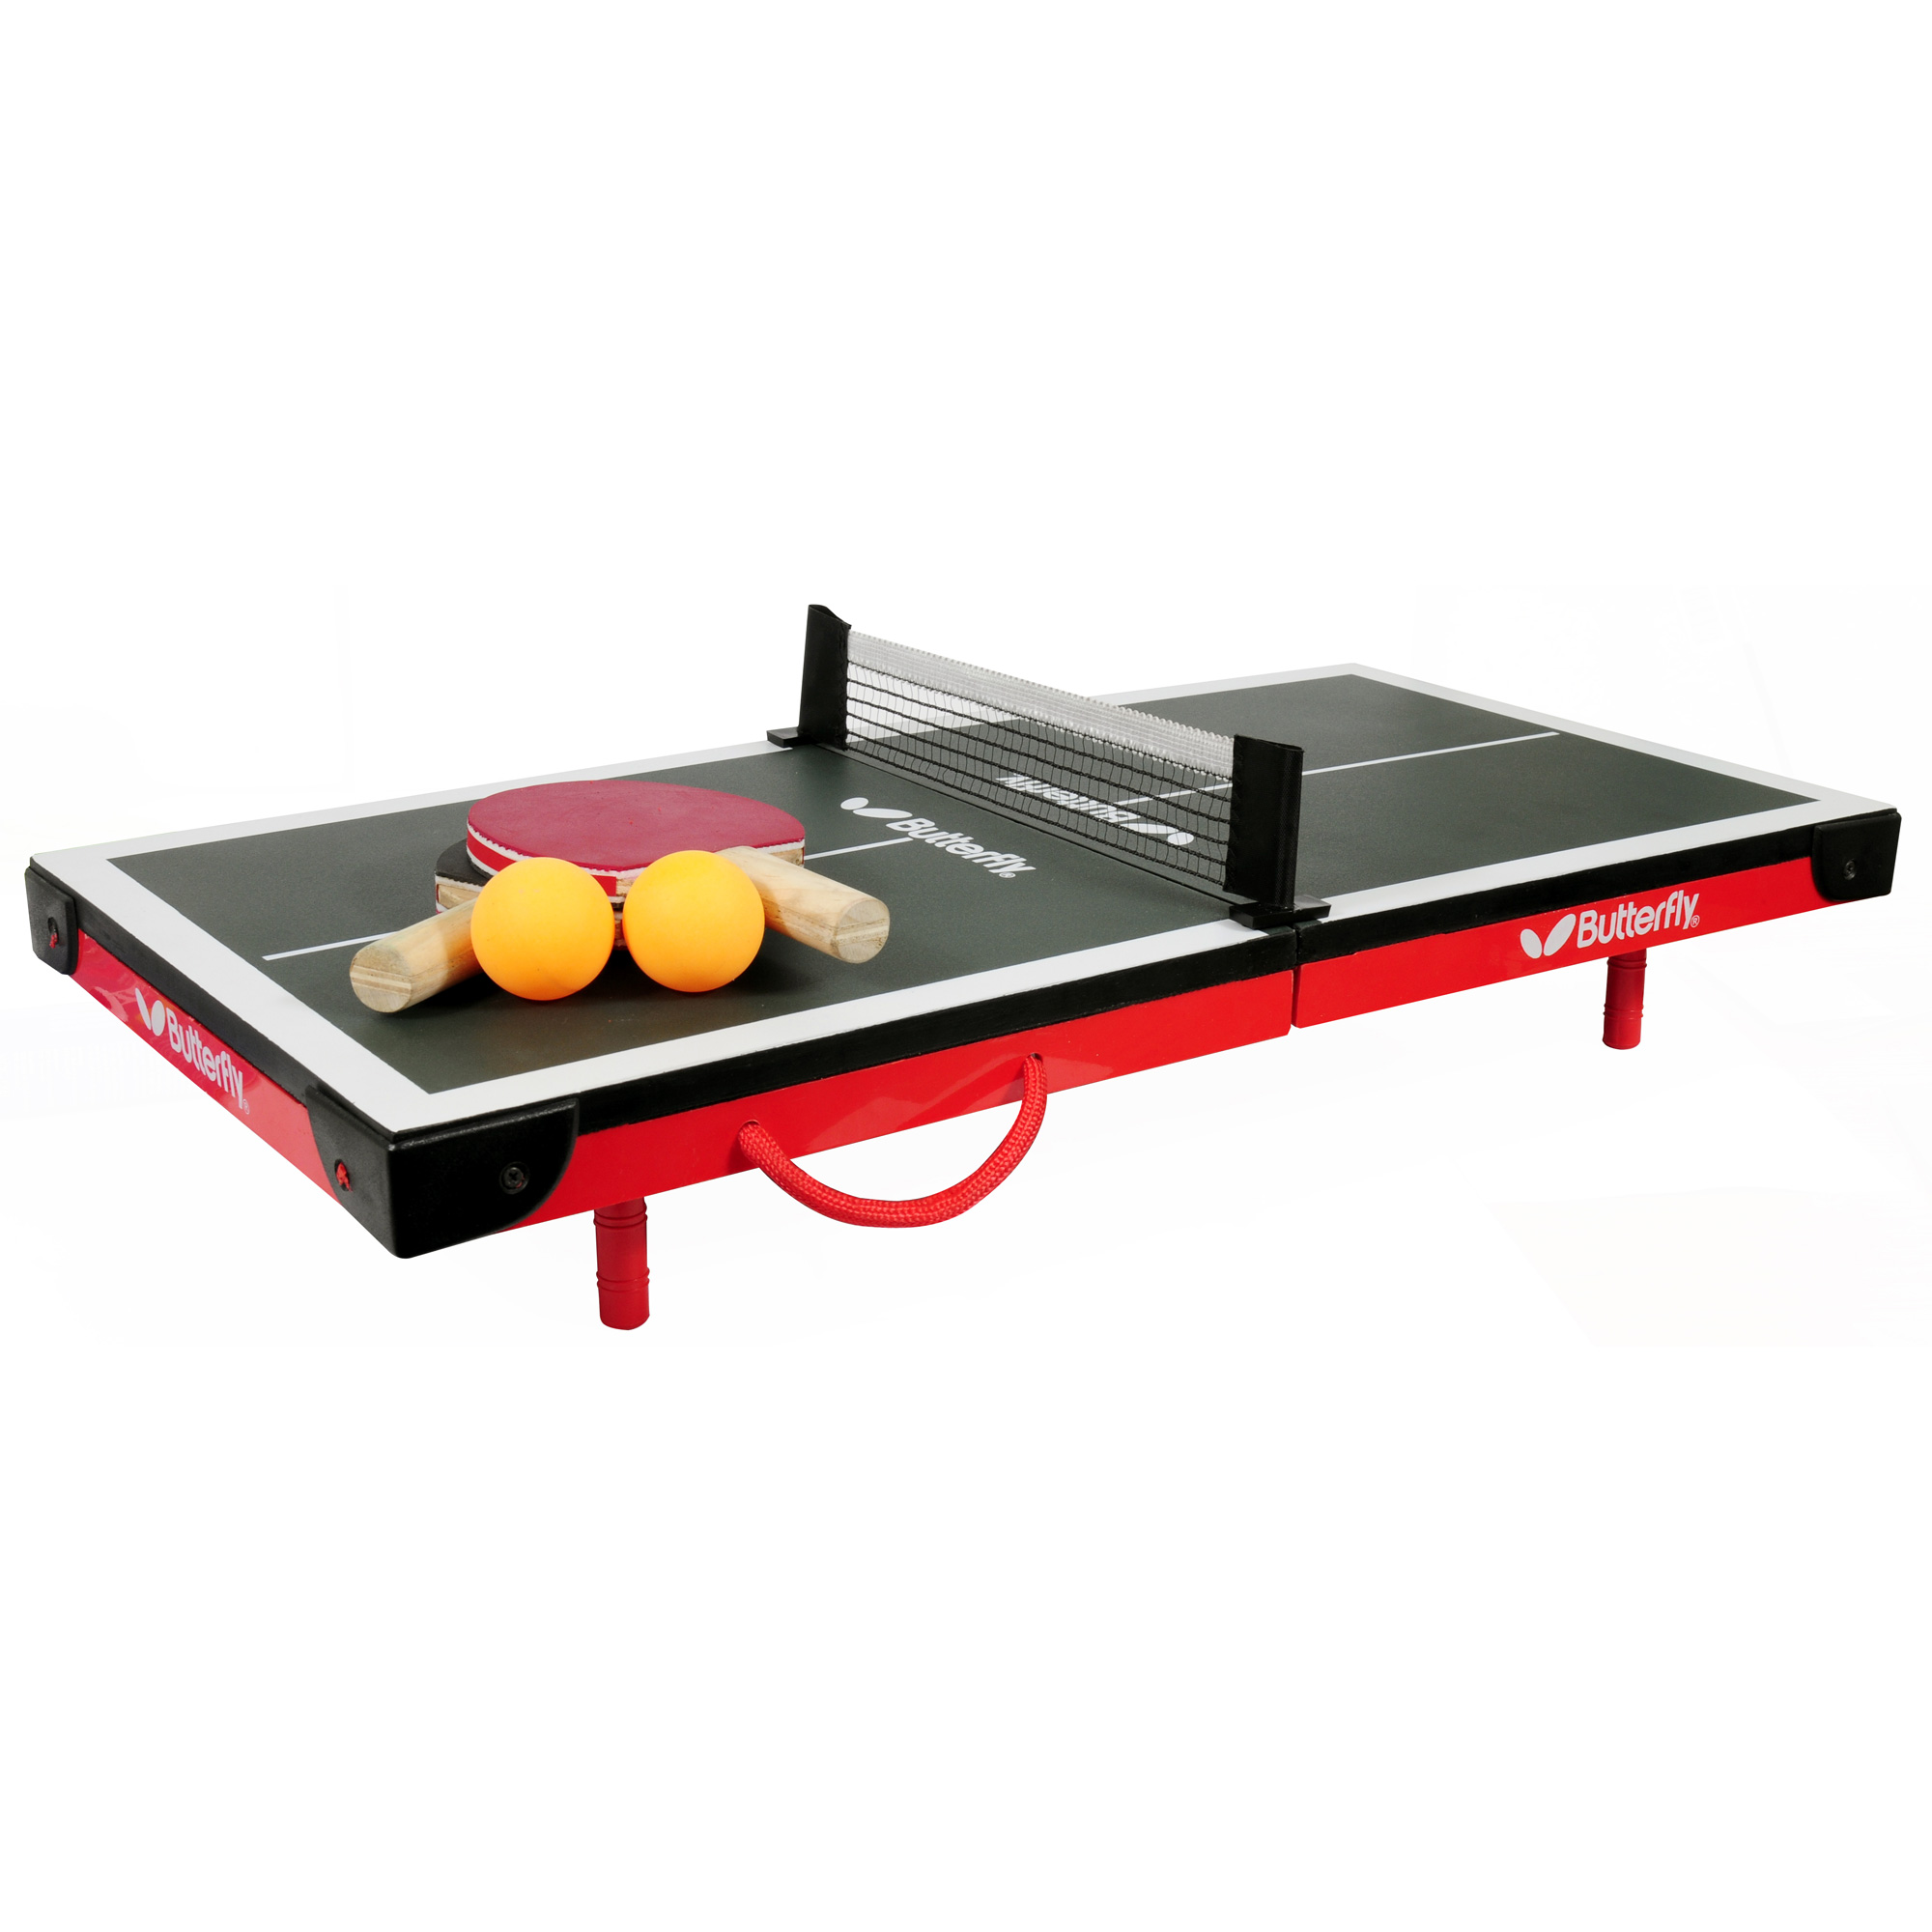 Butterfly table tennis online shop